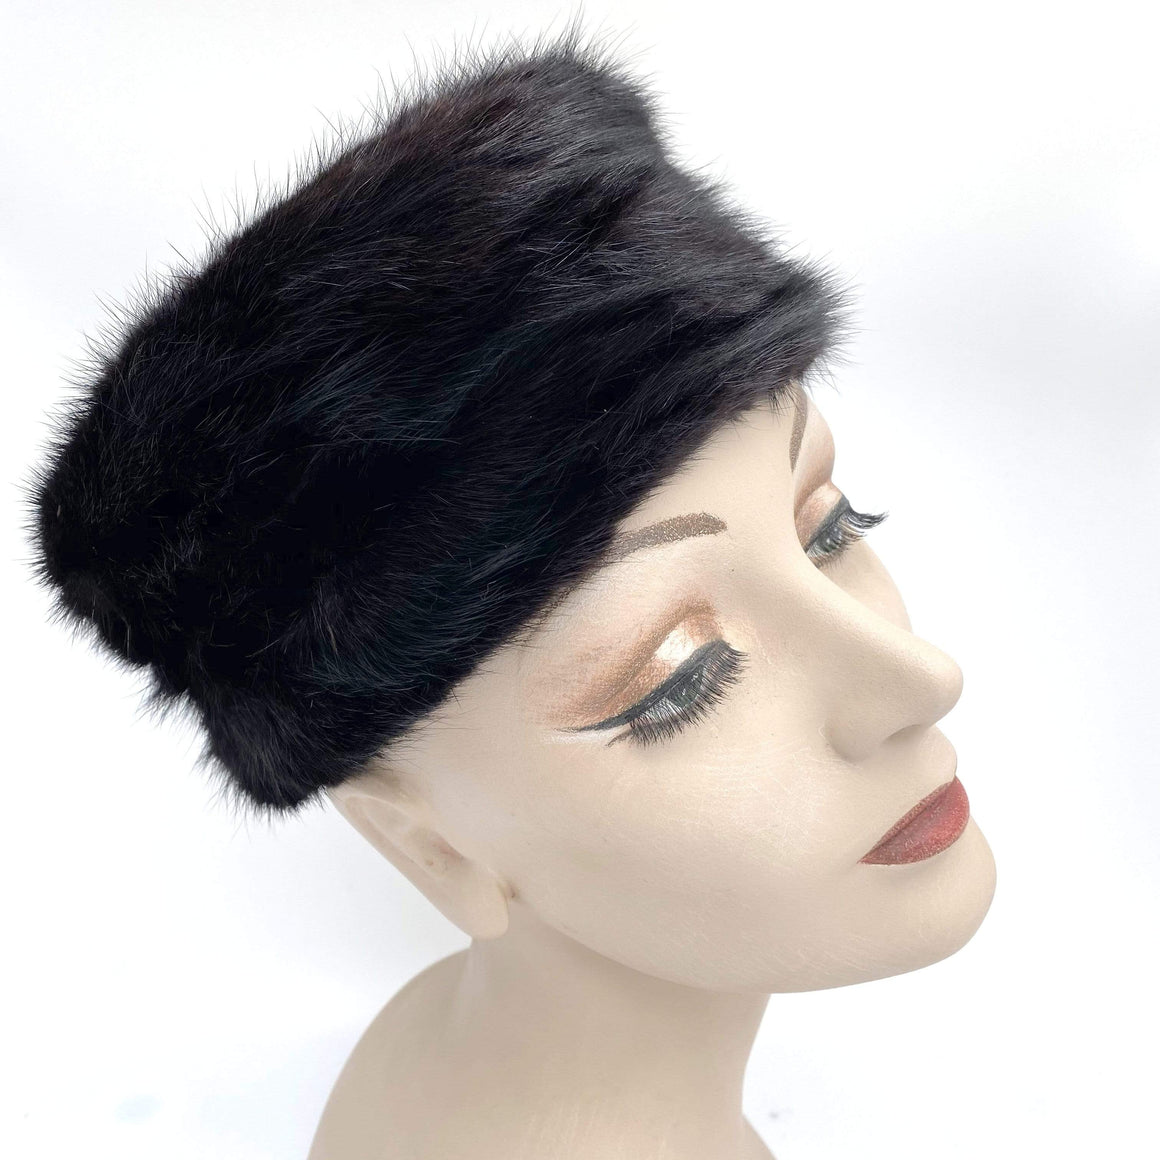 kristina iulo vintage collections Accessories Vintage 1950s Black Mink Pillbox Hat Bambergers